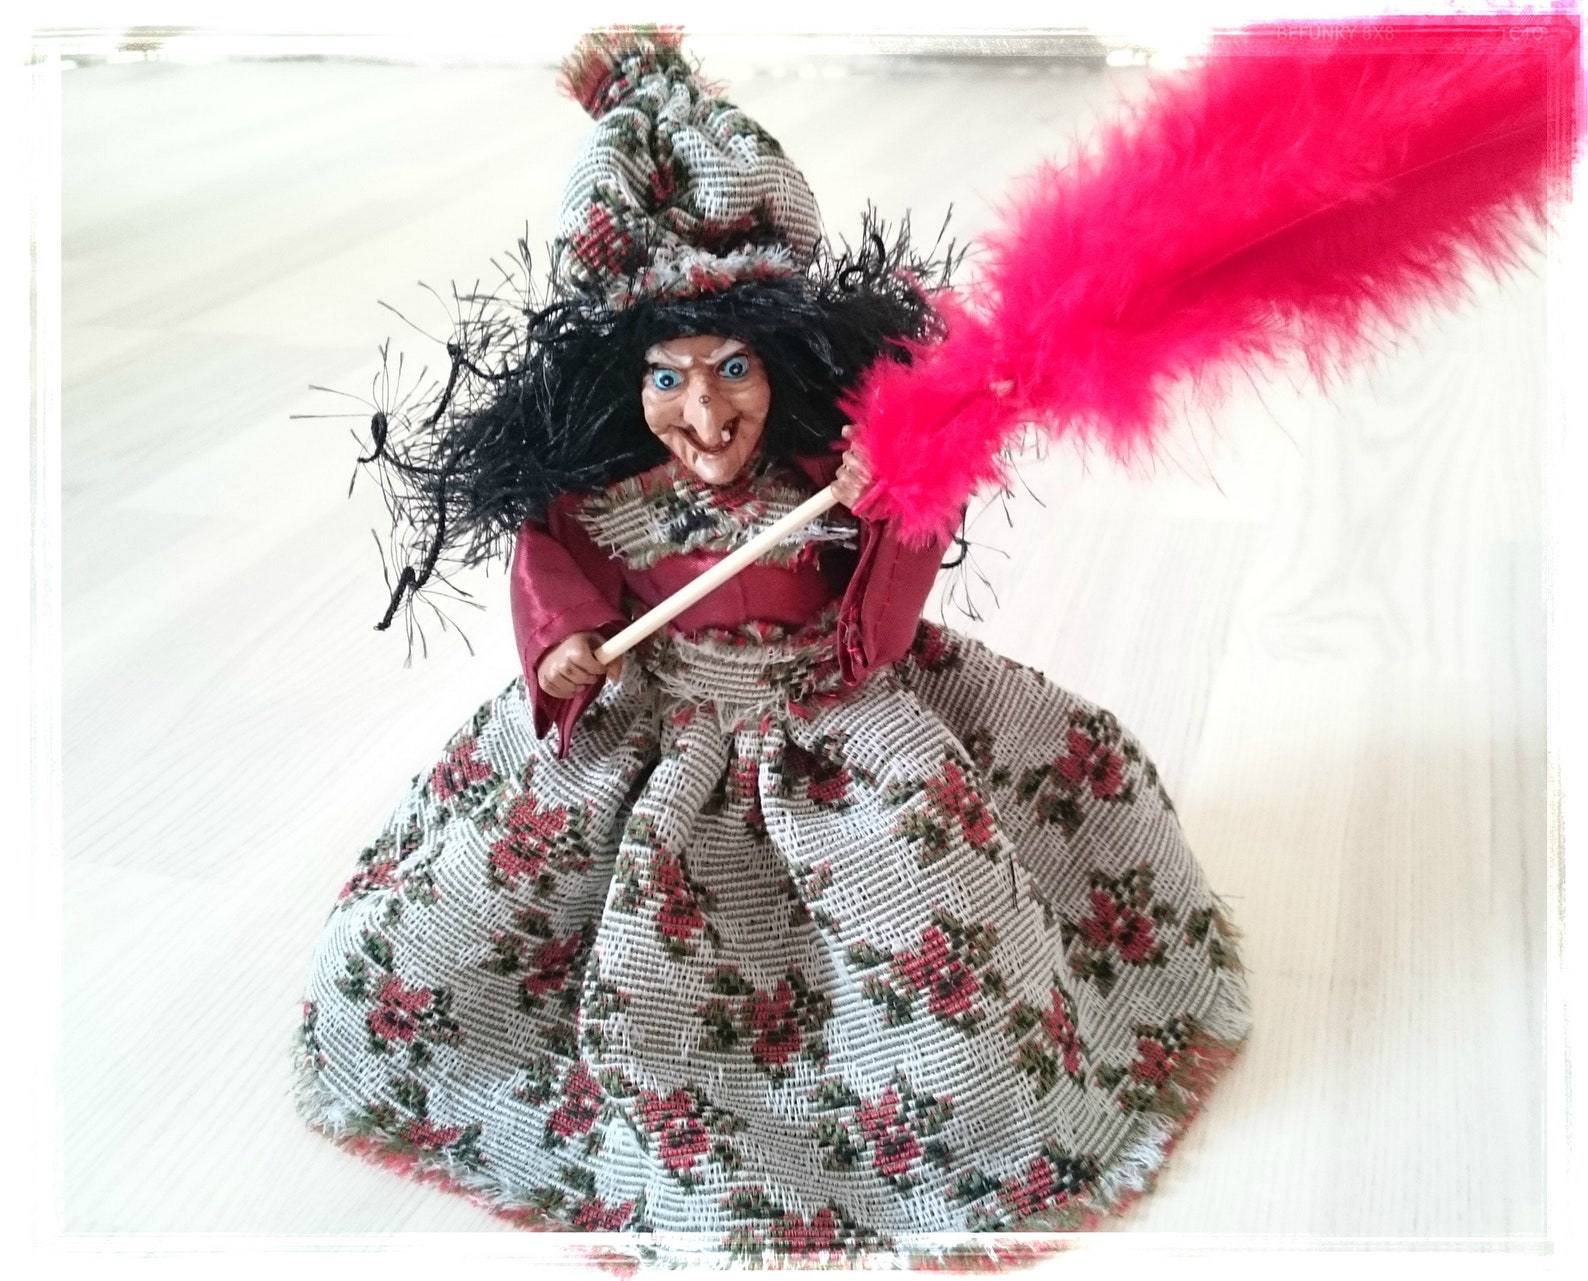 Kitchen WITCH, Kitchen Witch Doll, Witch Doll, Norway kitchen witch, Horror Decor, Hanging Witch, Fairy Figurine, Witch, Good Luck Witch Hag